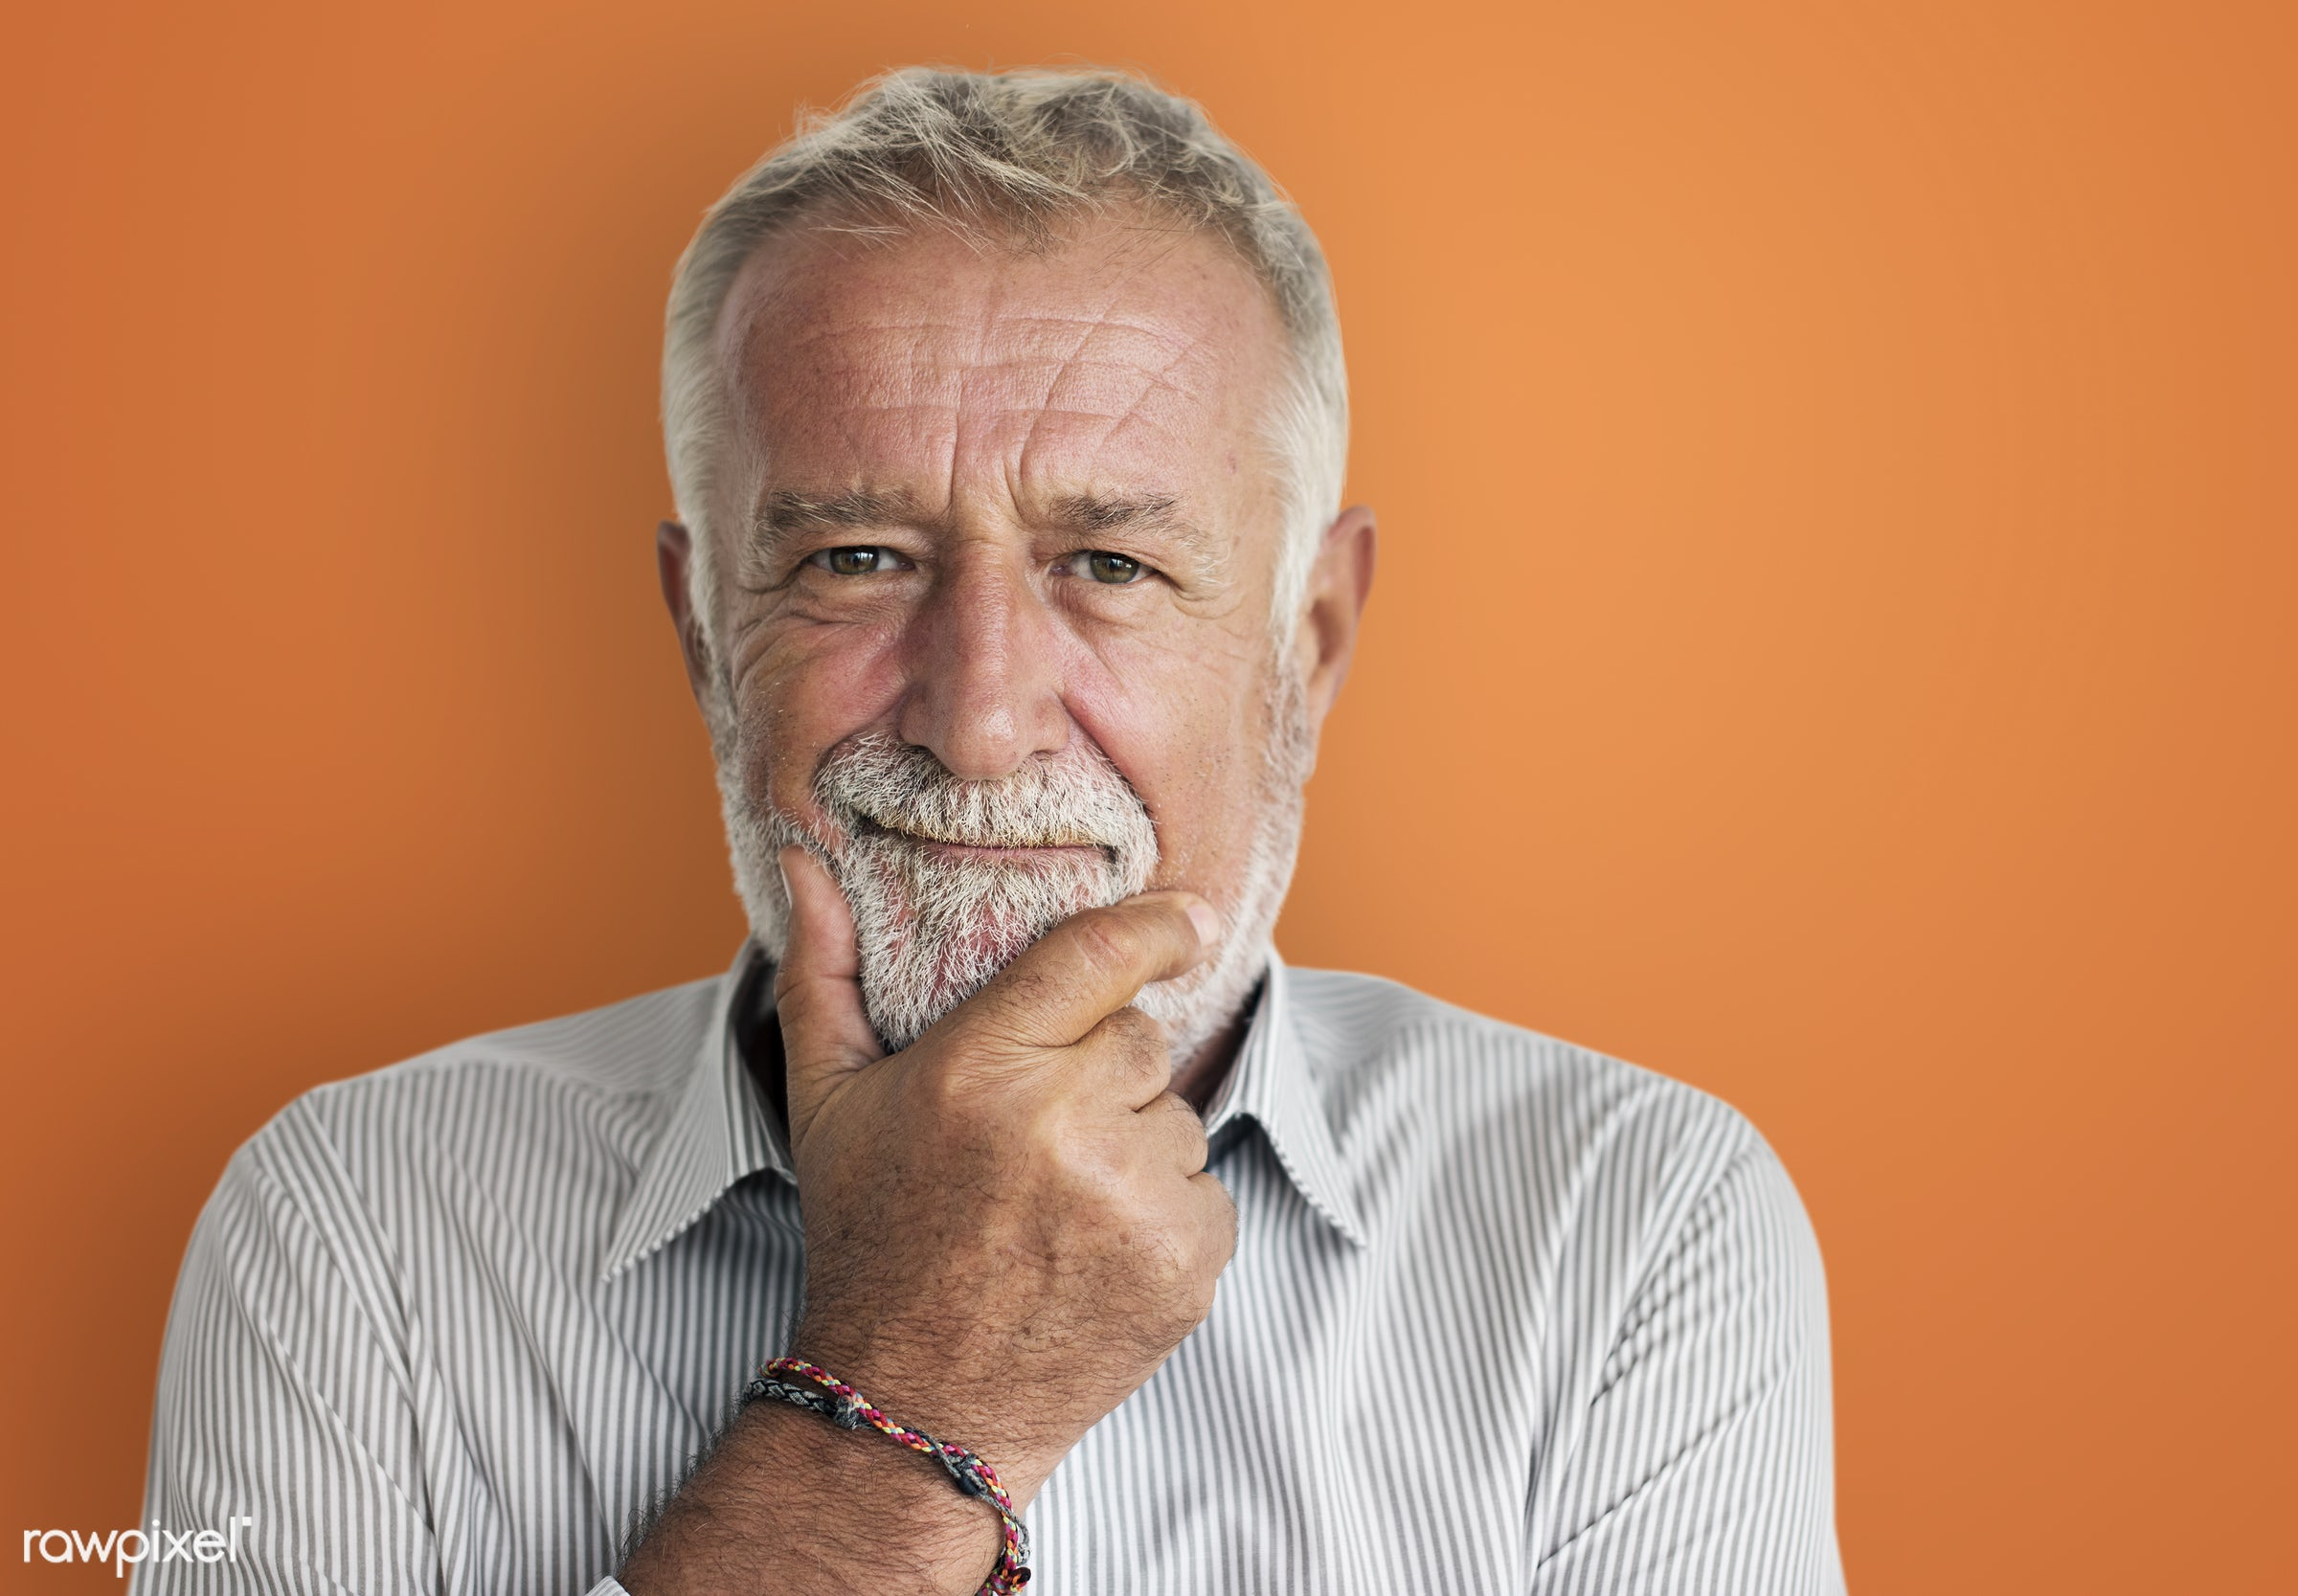 Portrait of bearded senior man - grandpa, adult, beard, bearded, carefree, casual, cheerful, closeup, emotional, expression...